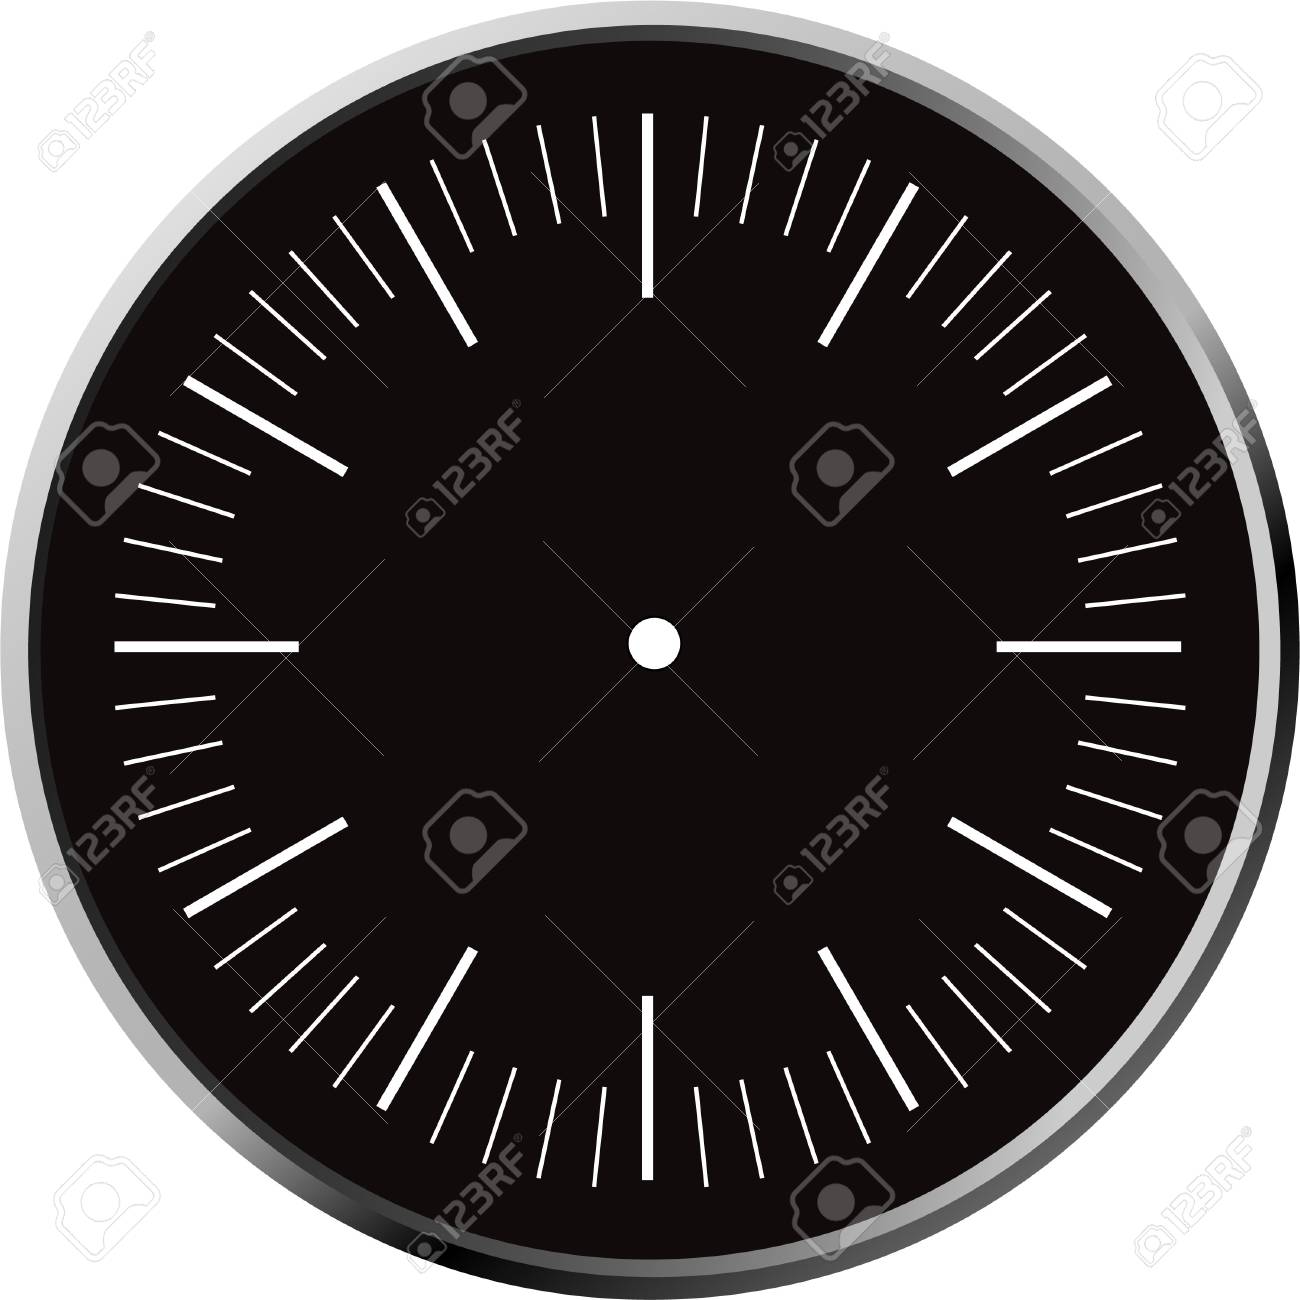 clock face blank royalty free cliparts, vectors, and stock